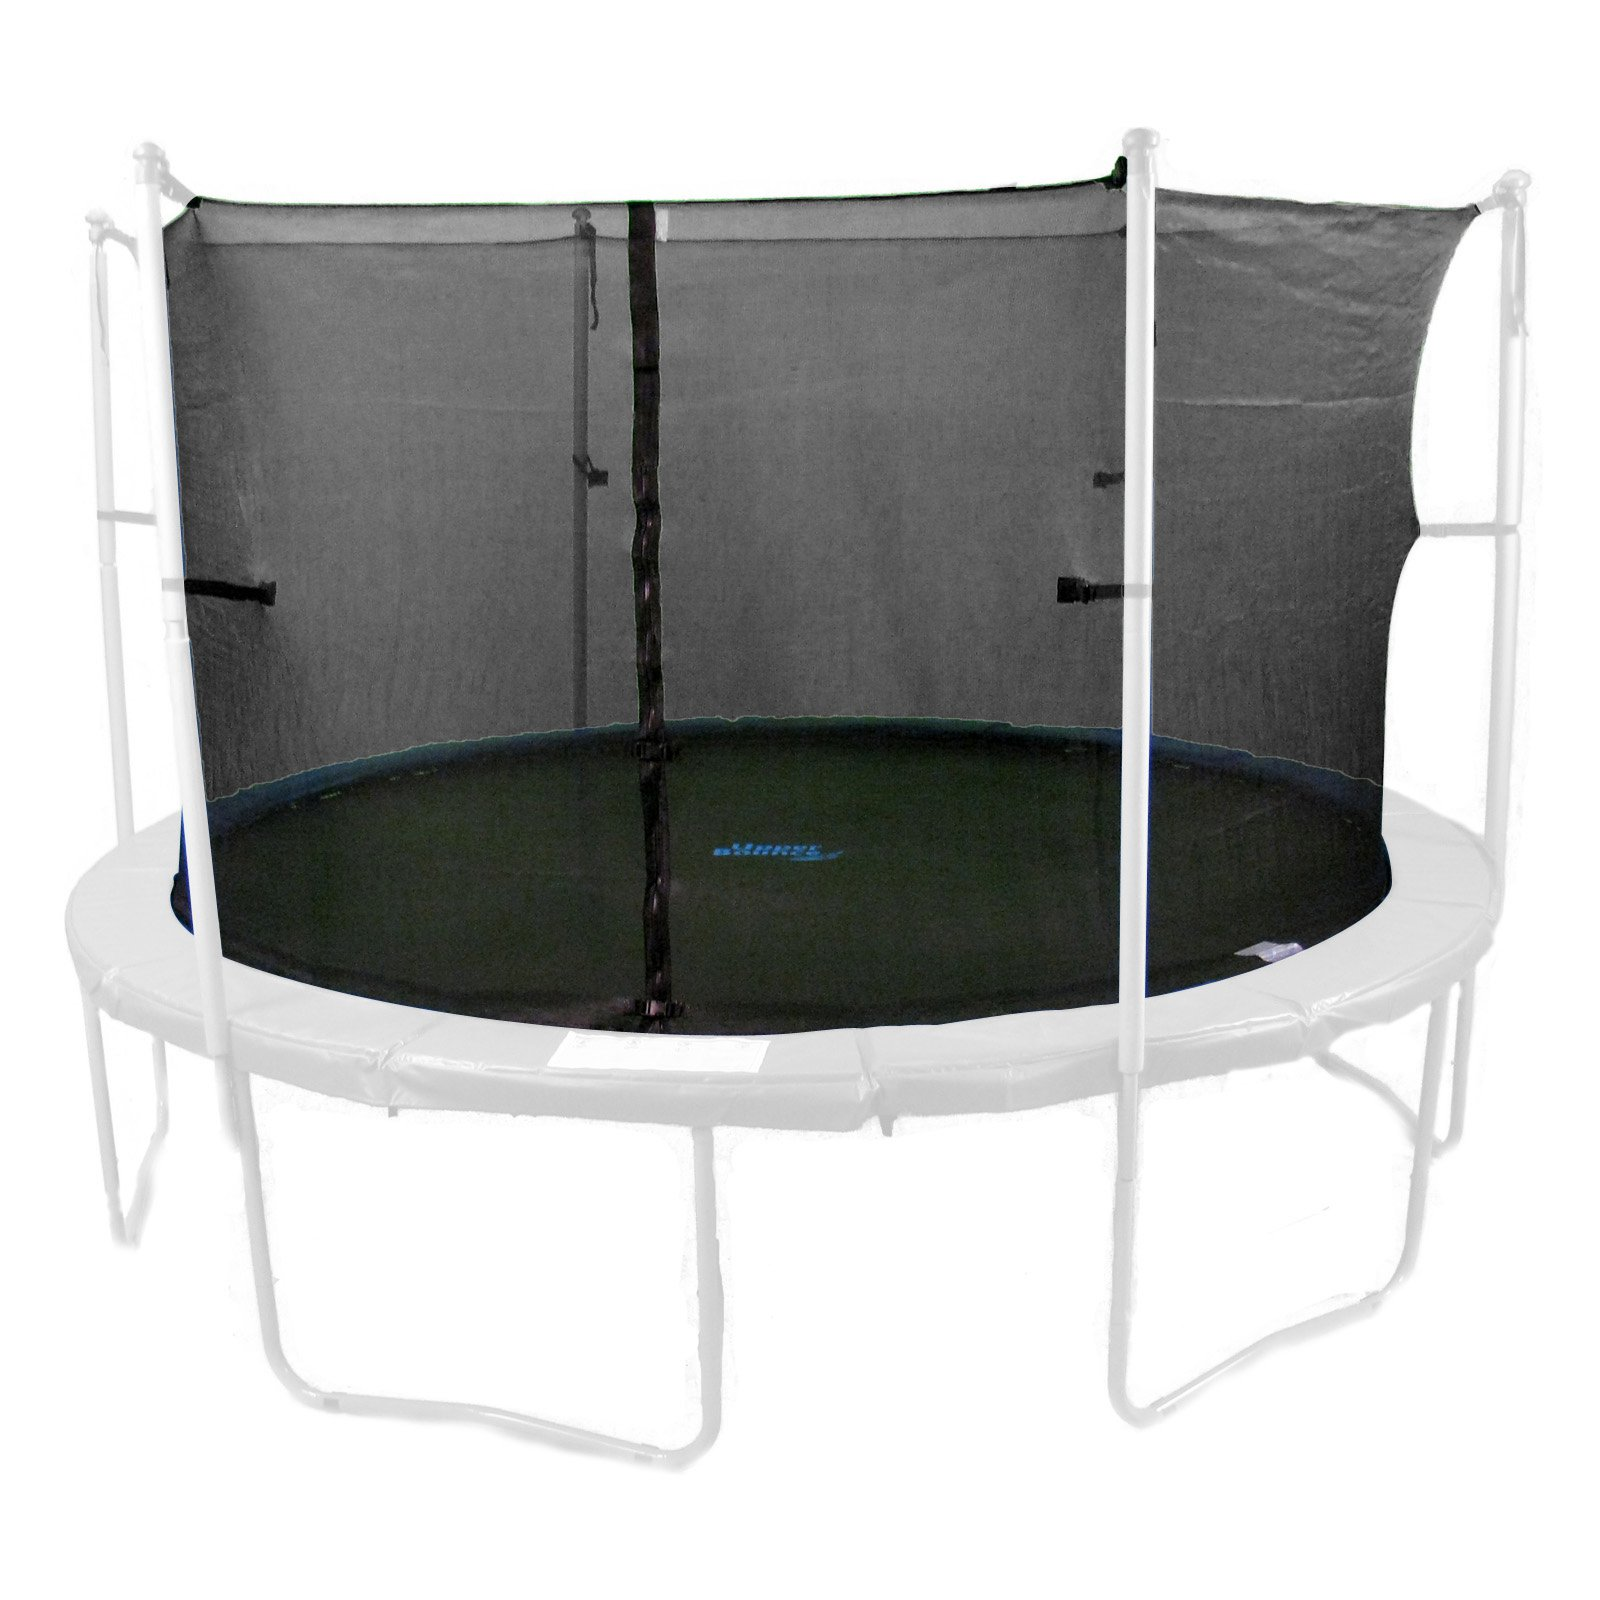 Upper Bounce 12 ft. Trampoline Enclosure Net